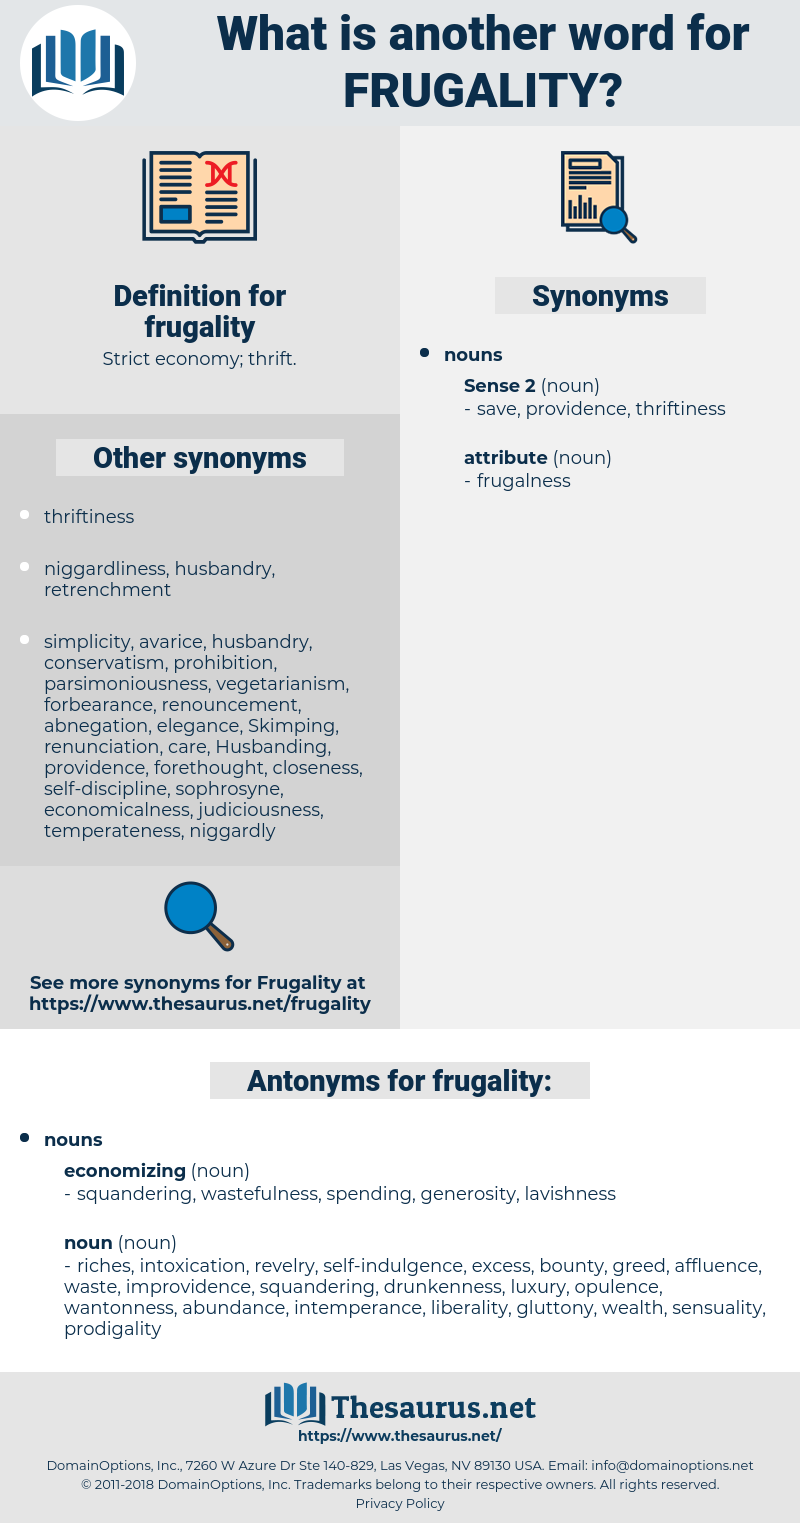 frugality, synonym frugality, another word for frugality, words like frugality, thesaurus frugality